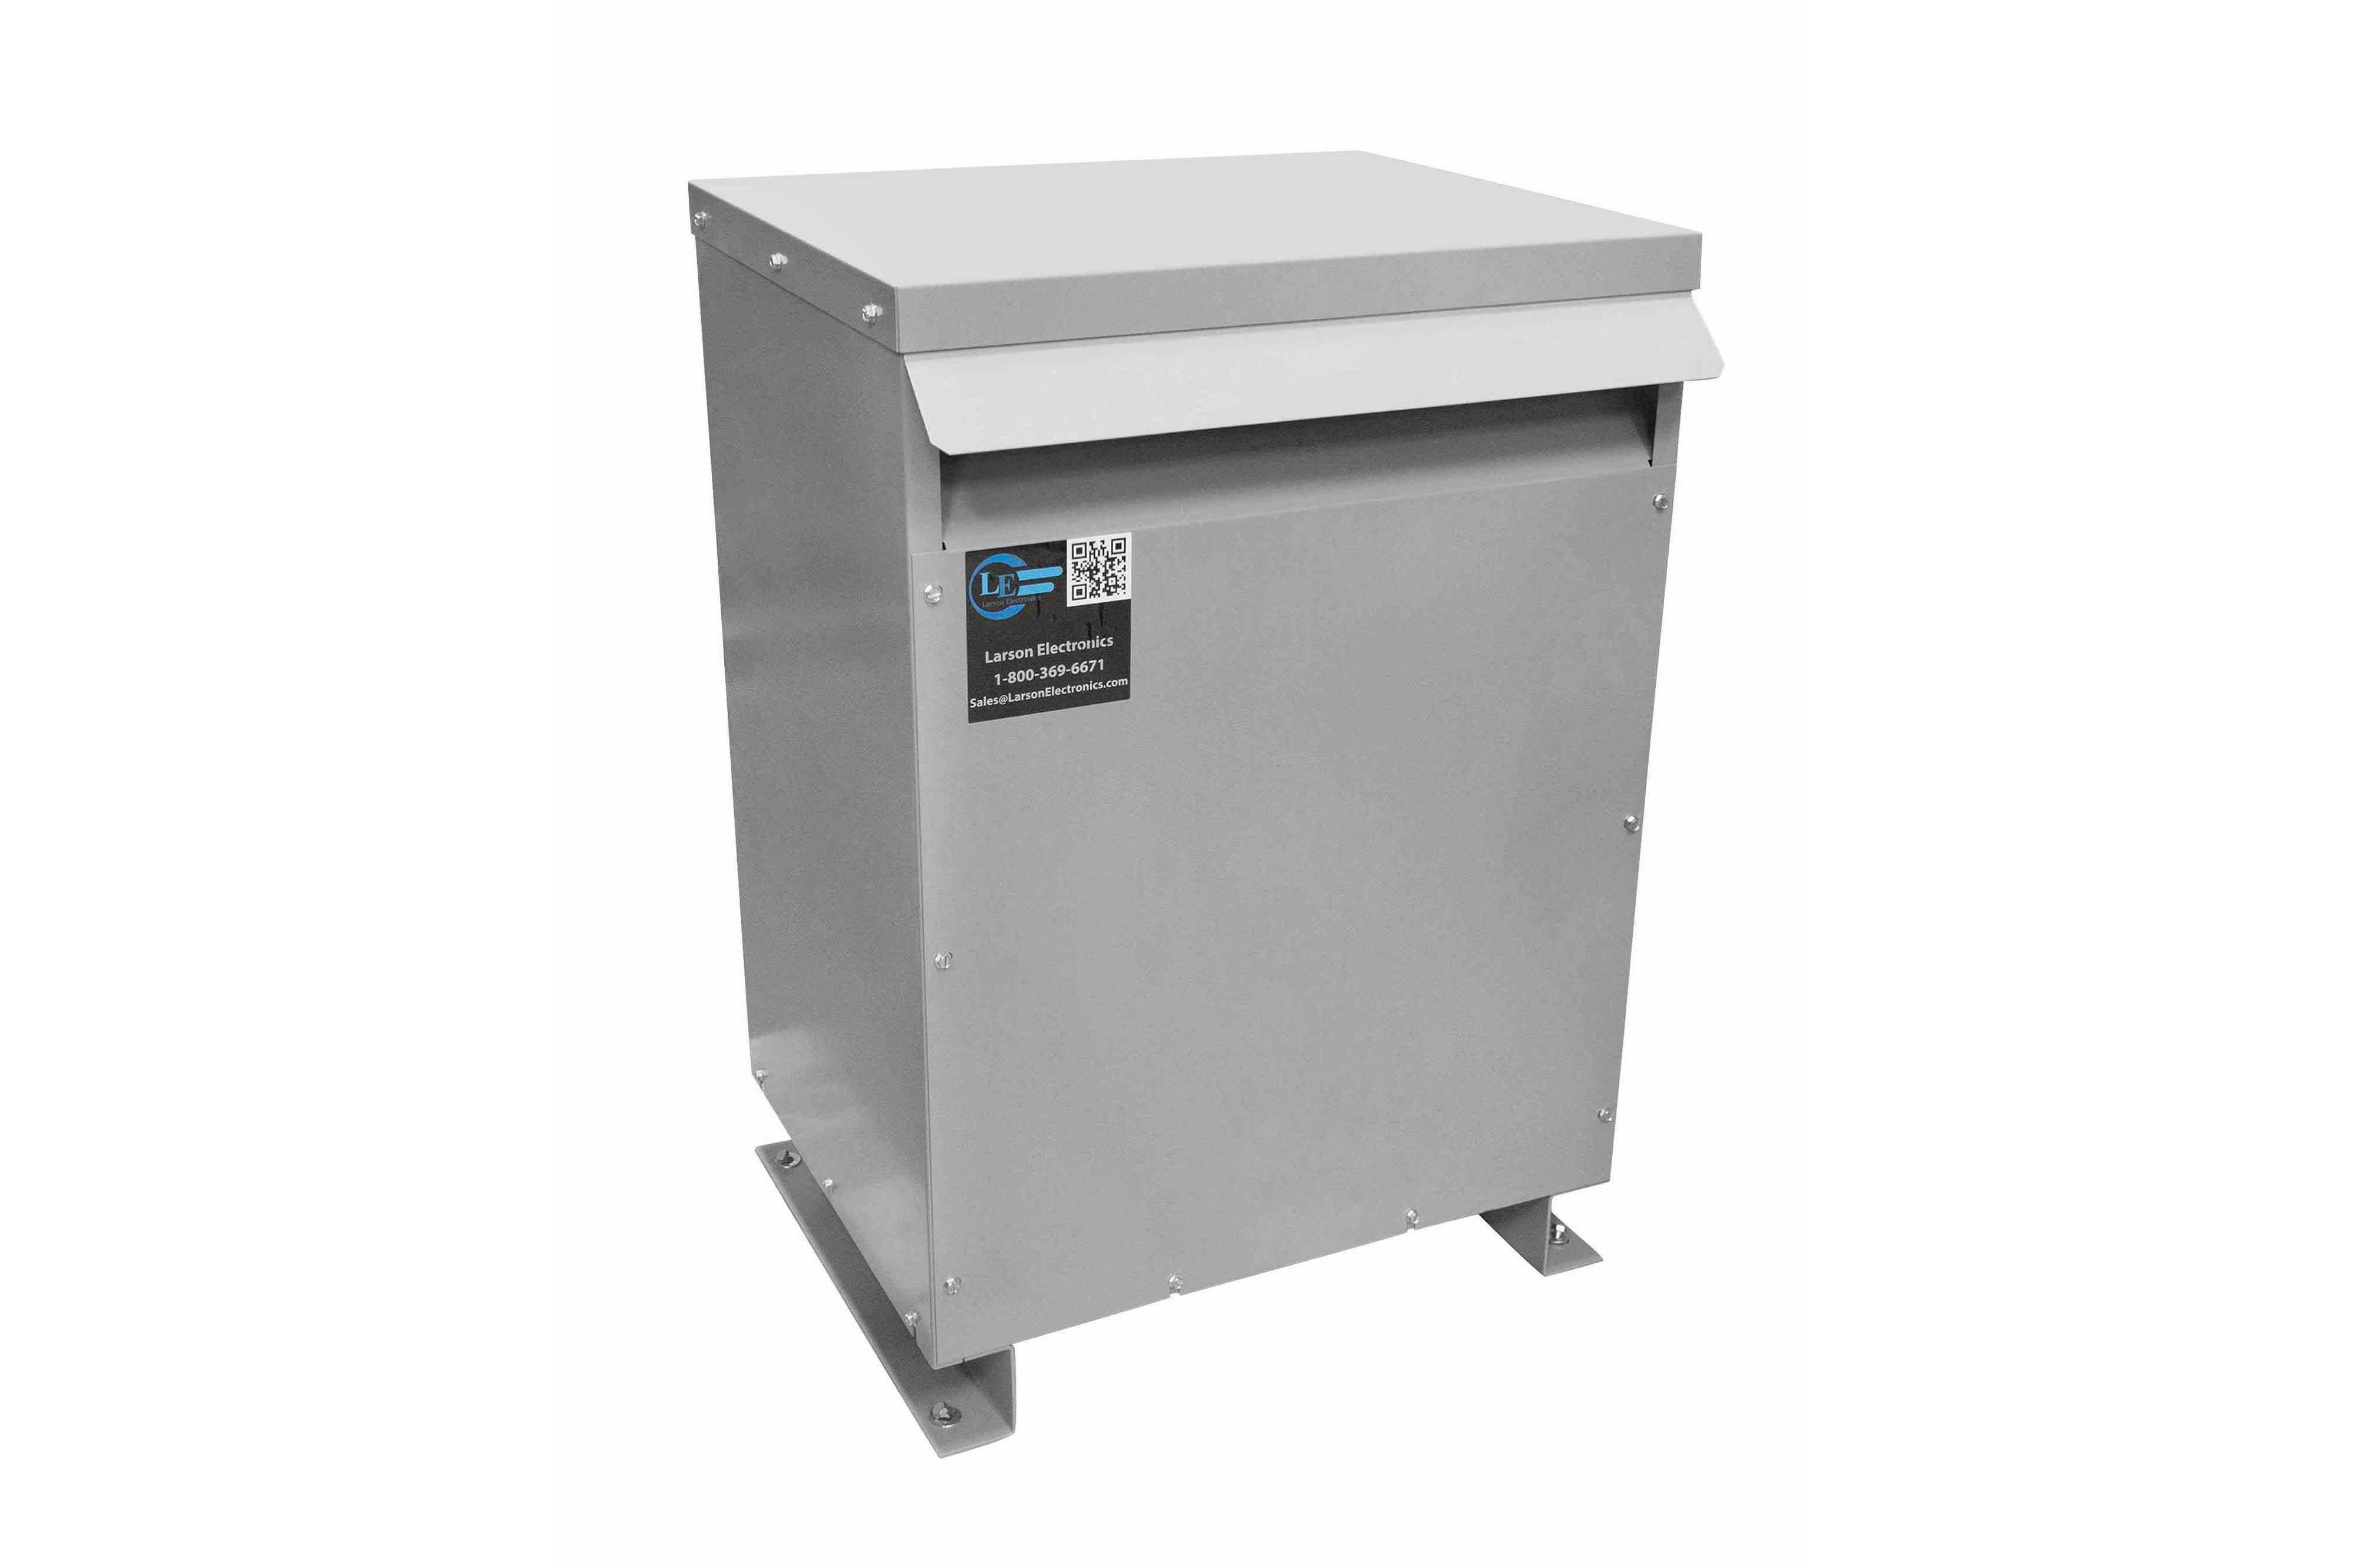 125 kVA 3PH Isolation Transformer, 600V Wye Primary, 415V Delta Secondary, N3R, Ventilated, 60 Hz